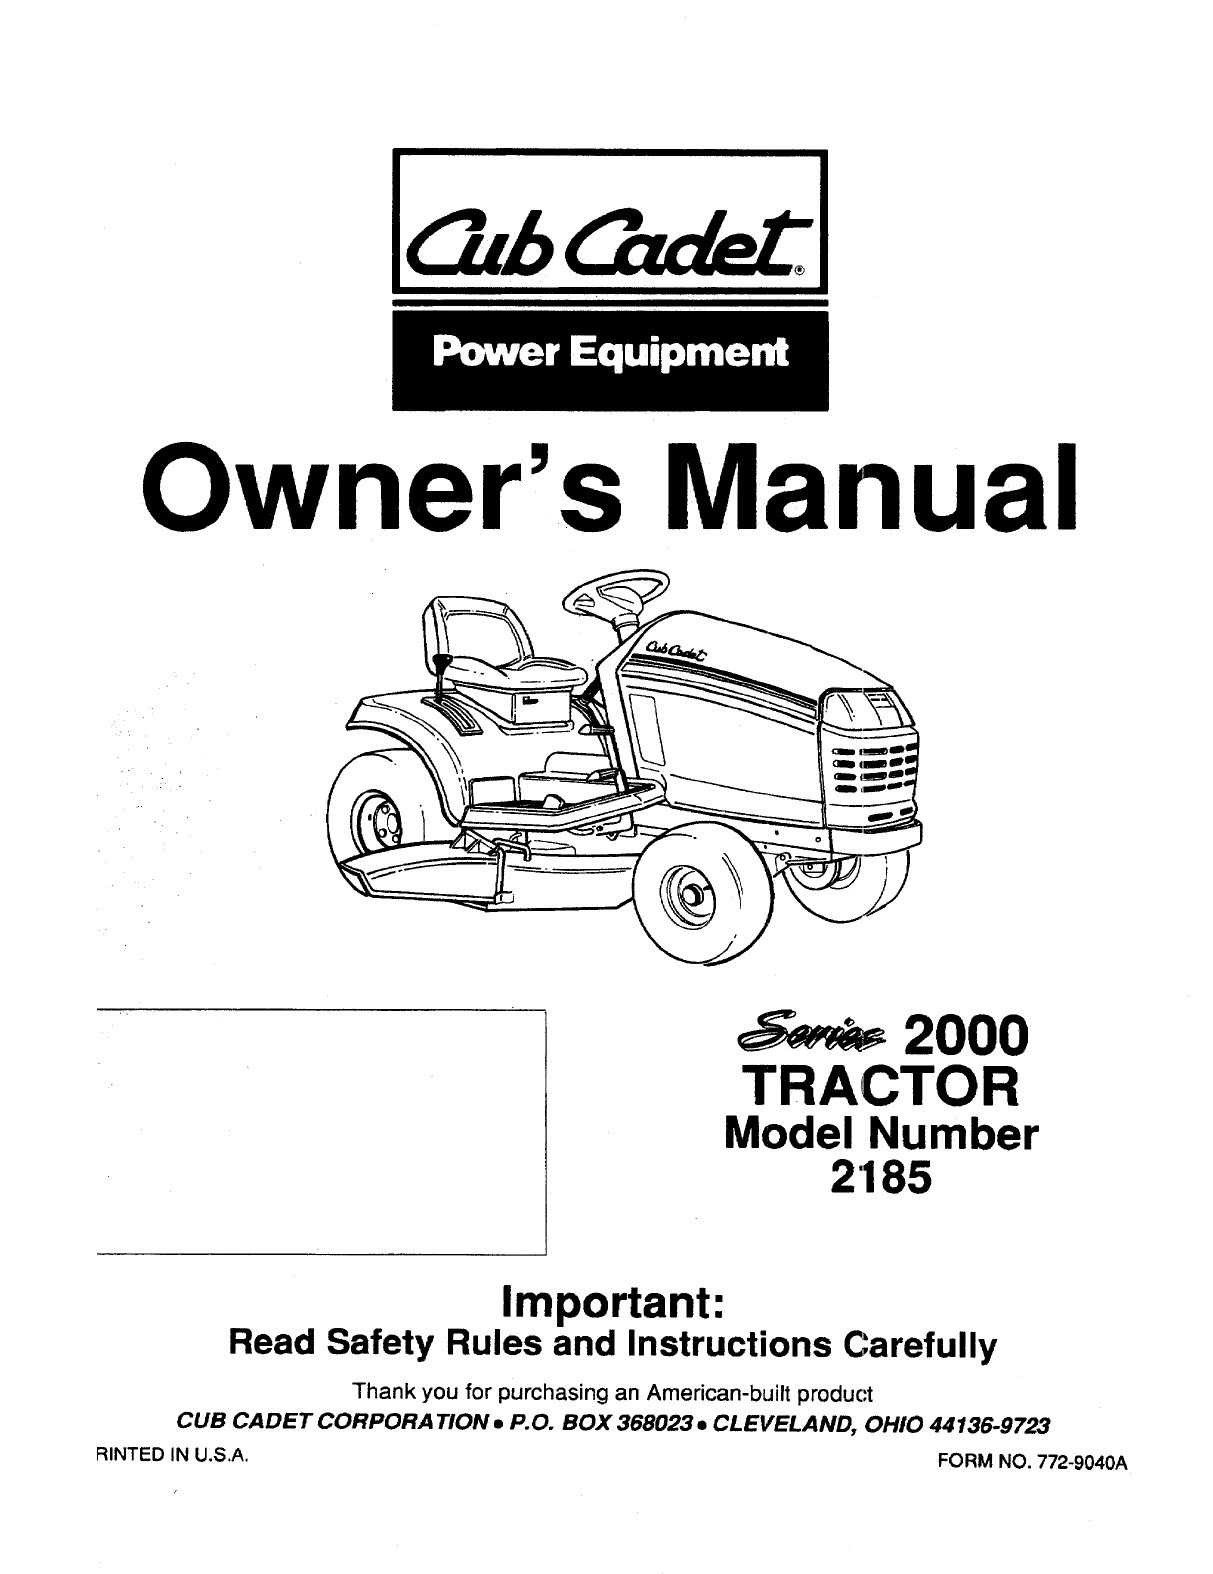 [DIAGRAM] 7260 Cub Cadet Wiring Diagram For Tractor FULL